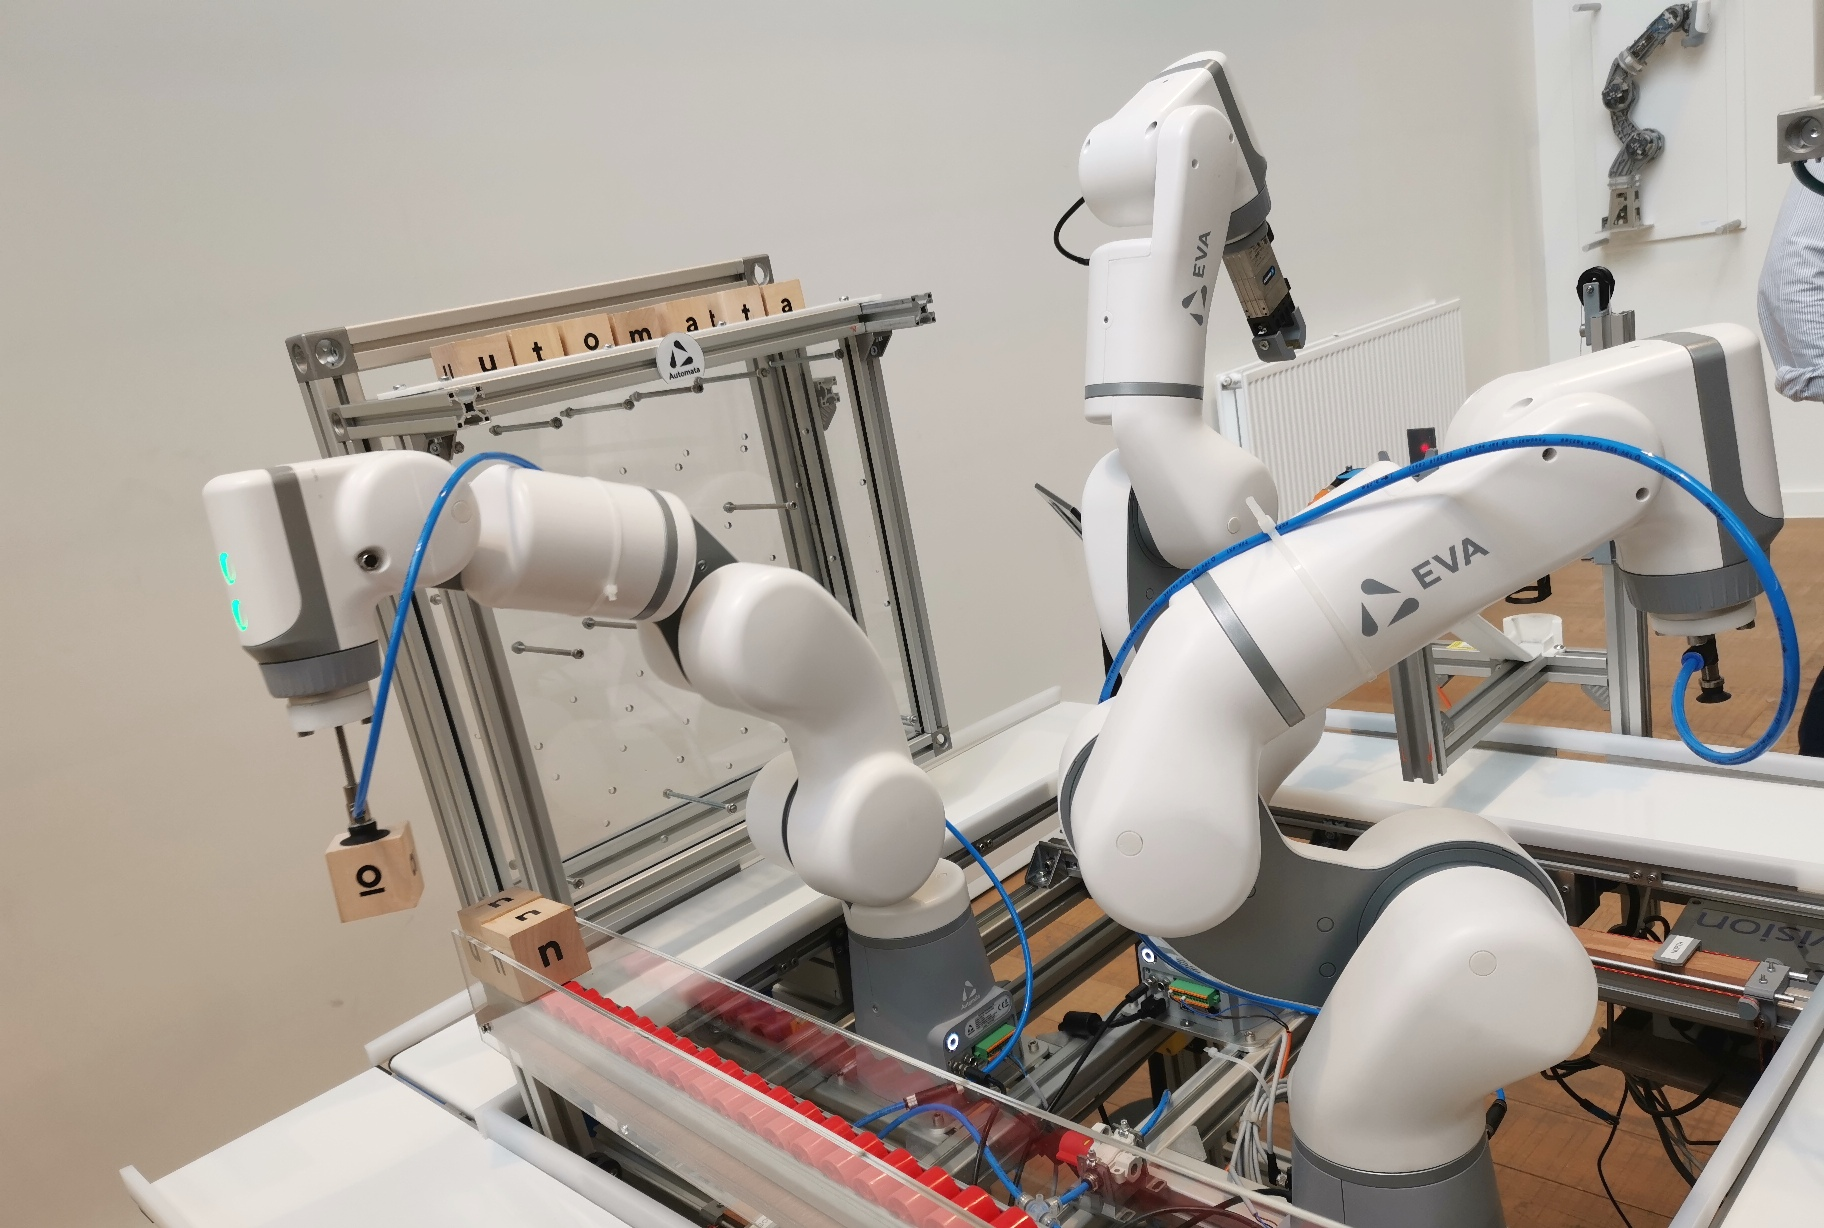 Automata wants to democratize industrial automation with a $6,600